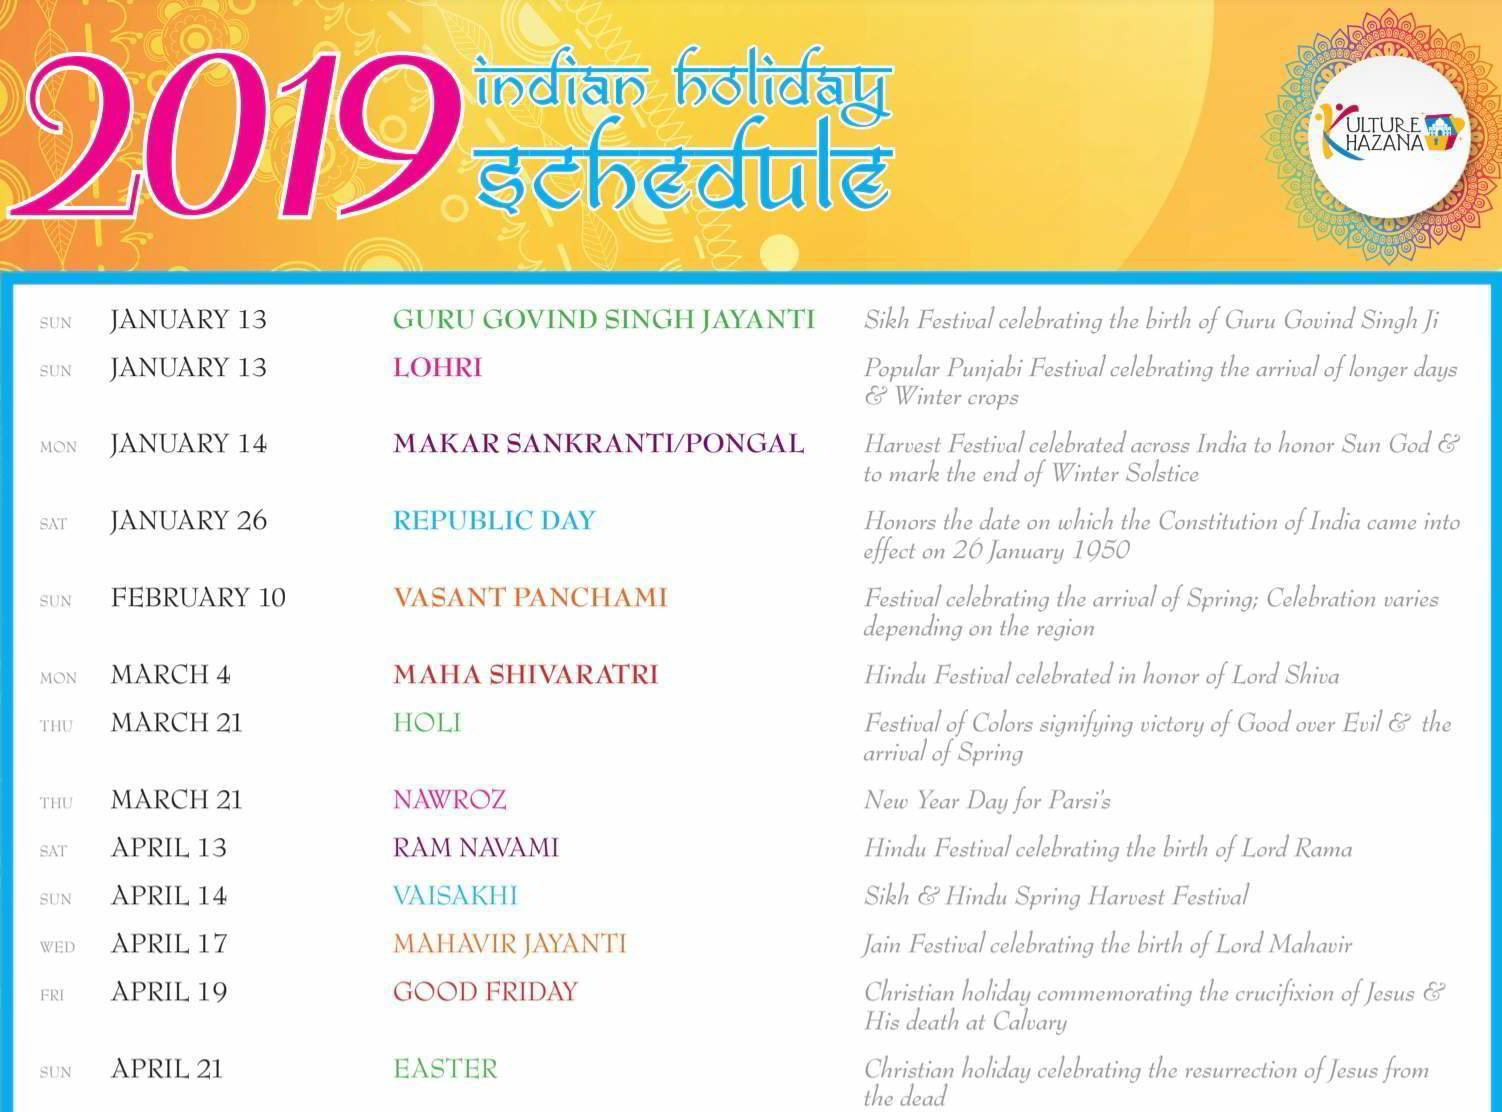 2019 Indian Holiday Schedule